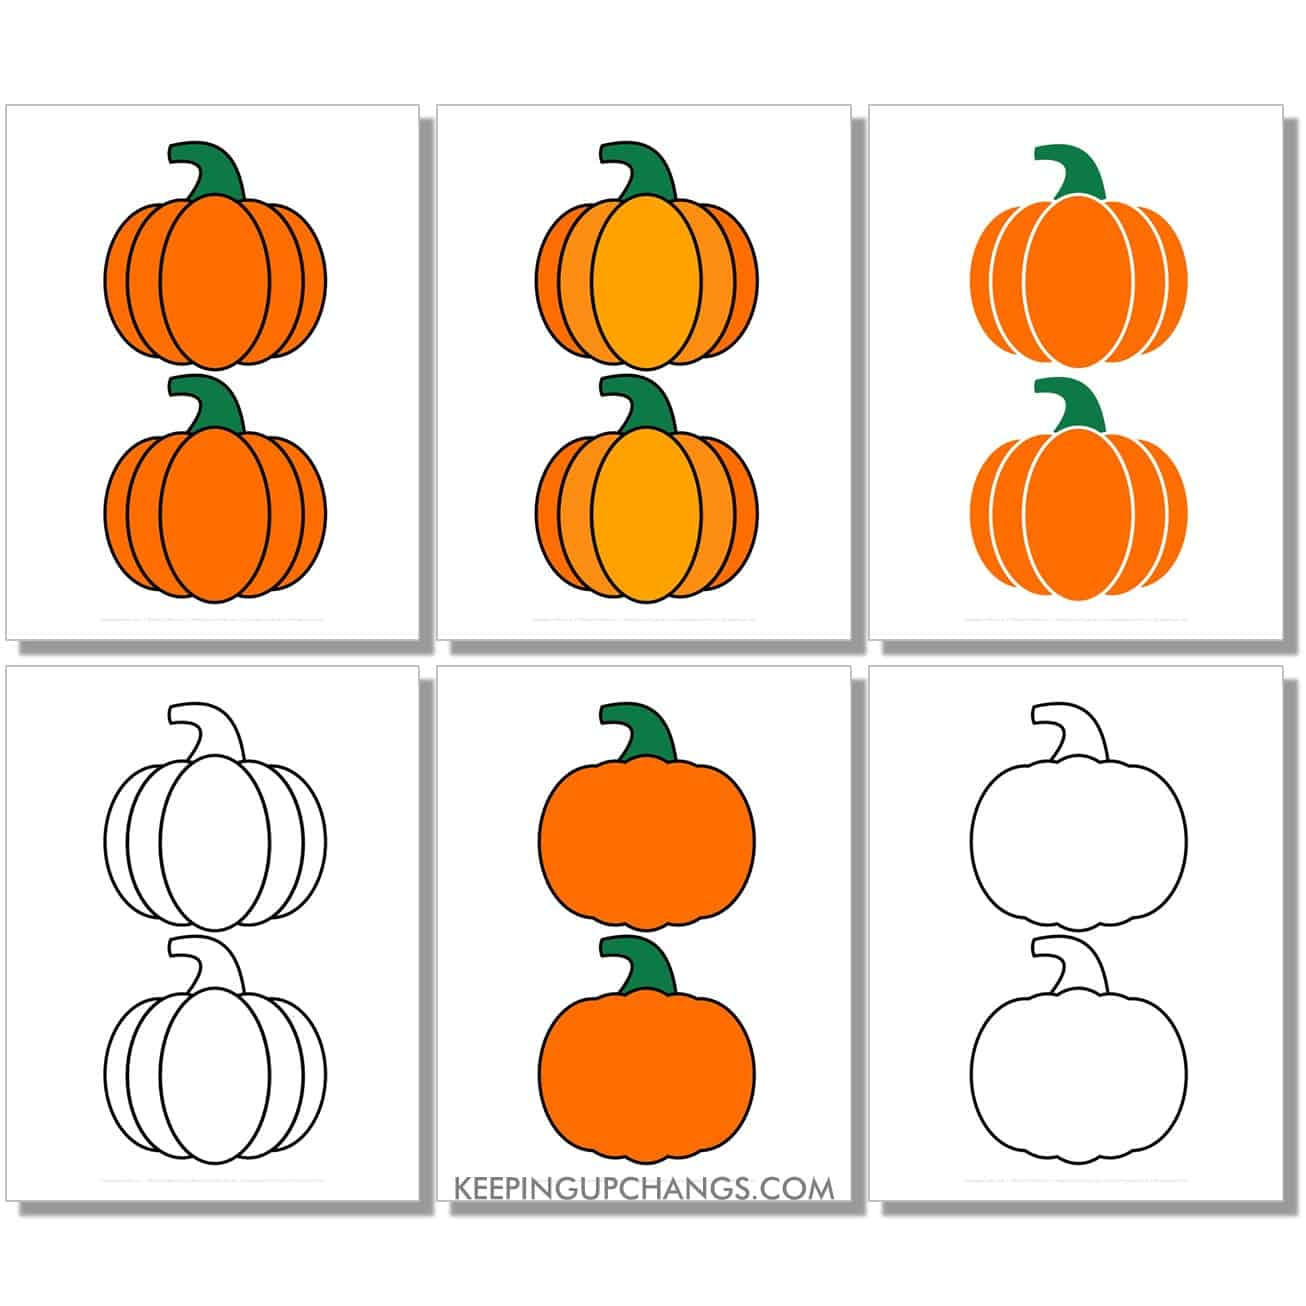 free medium classic pumpkin in color, black and white, silhouette, 2 to a page.